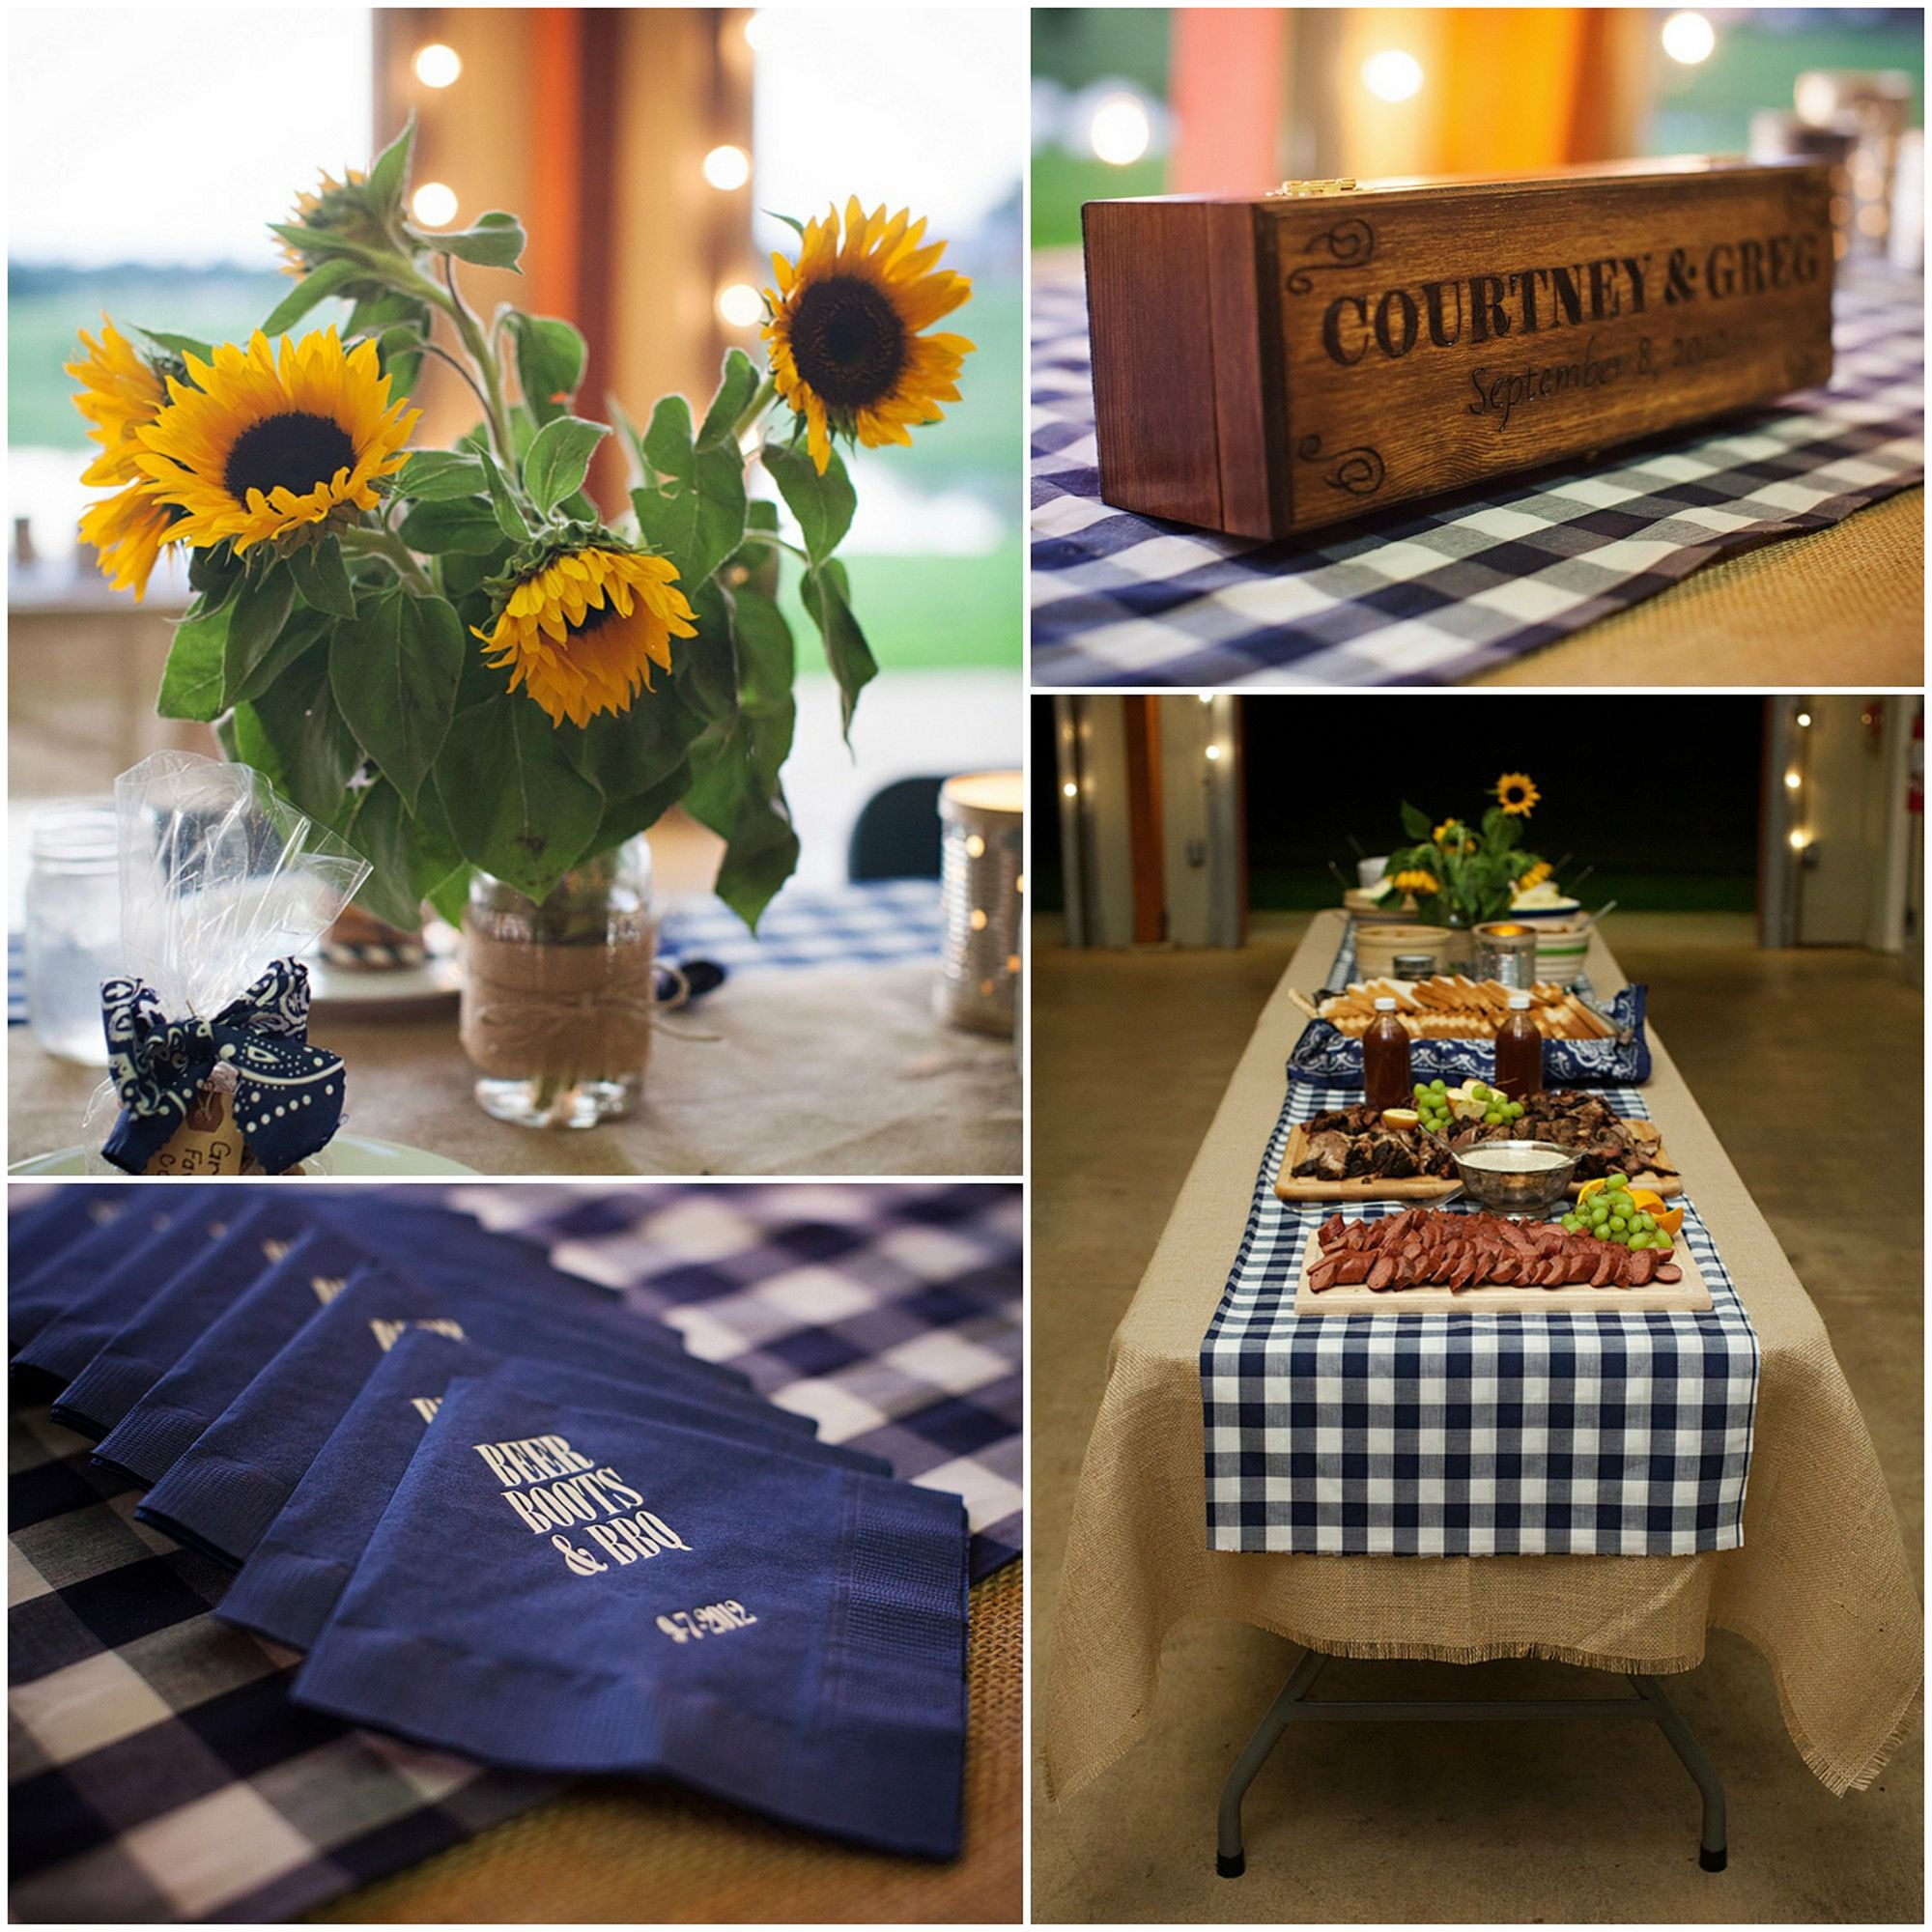 Adorable 25+ Best Rustic BBQ Wedding Ideas for Enjoyment Your Wedding Guests  https://oosile.com/25-best-rustic-bbq-wedding-ideas-for-enjoyment-your-wedding-guests-16495